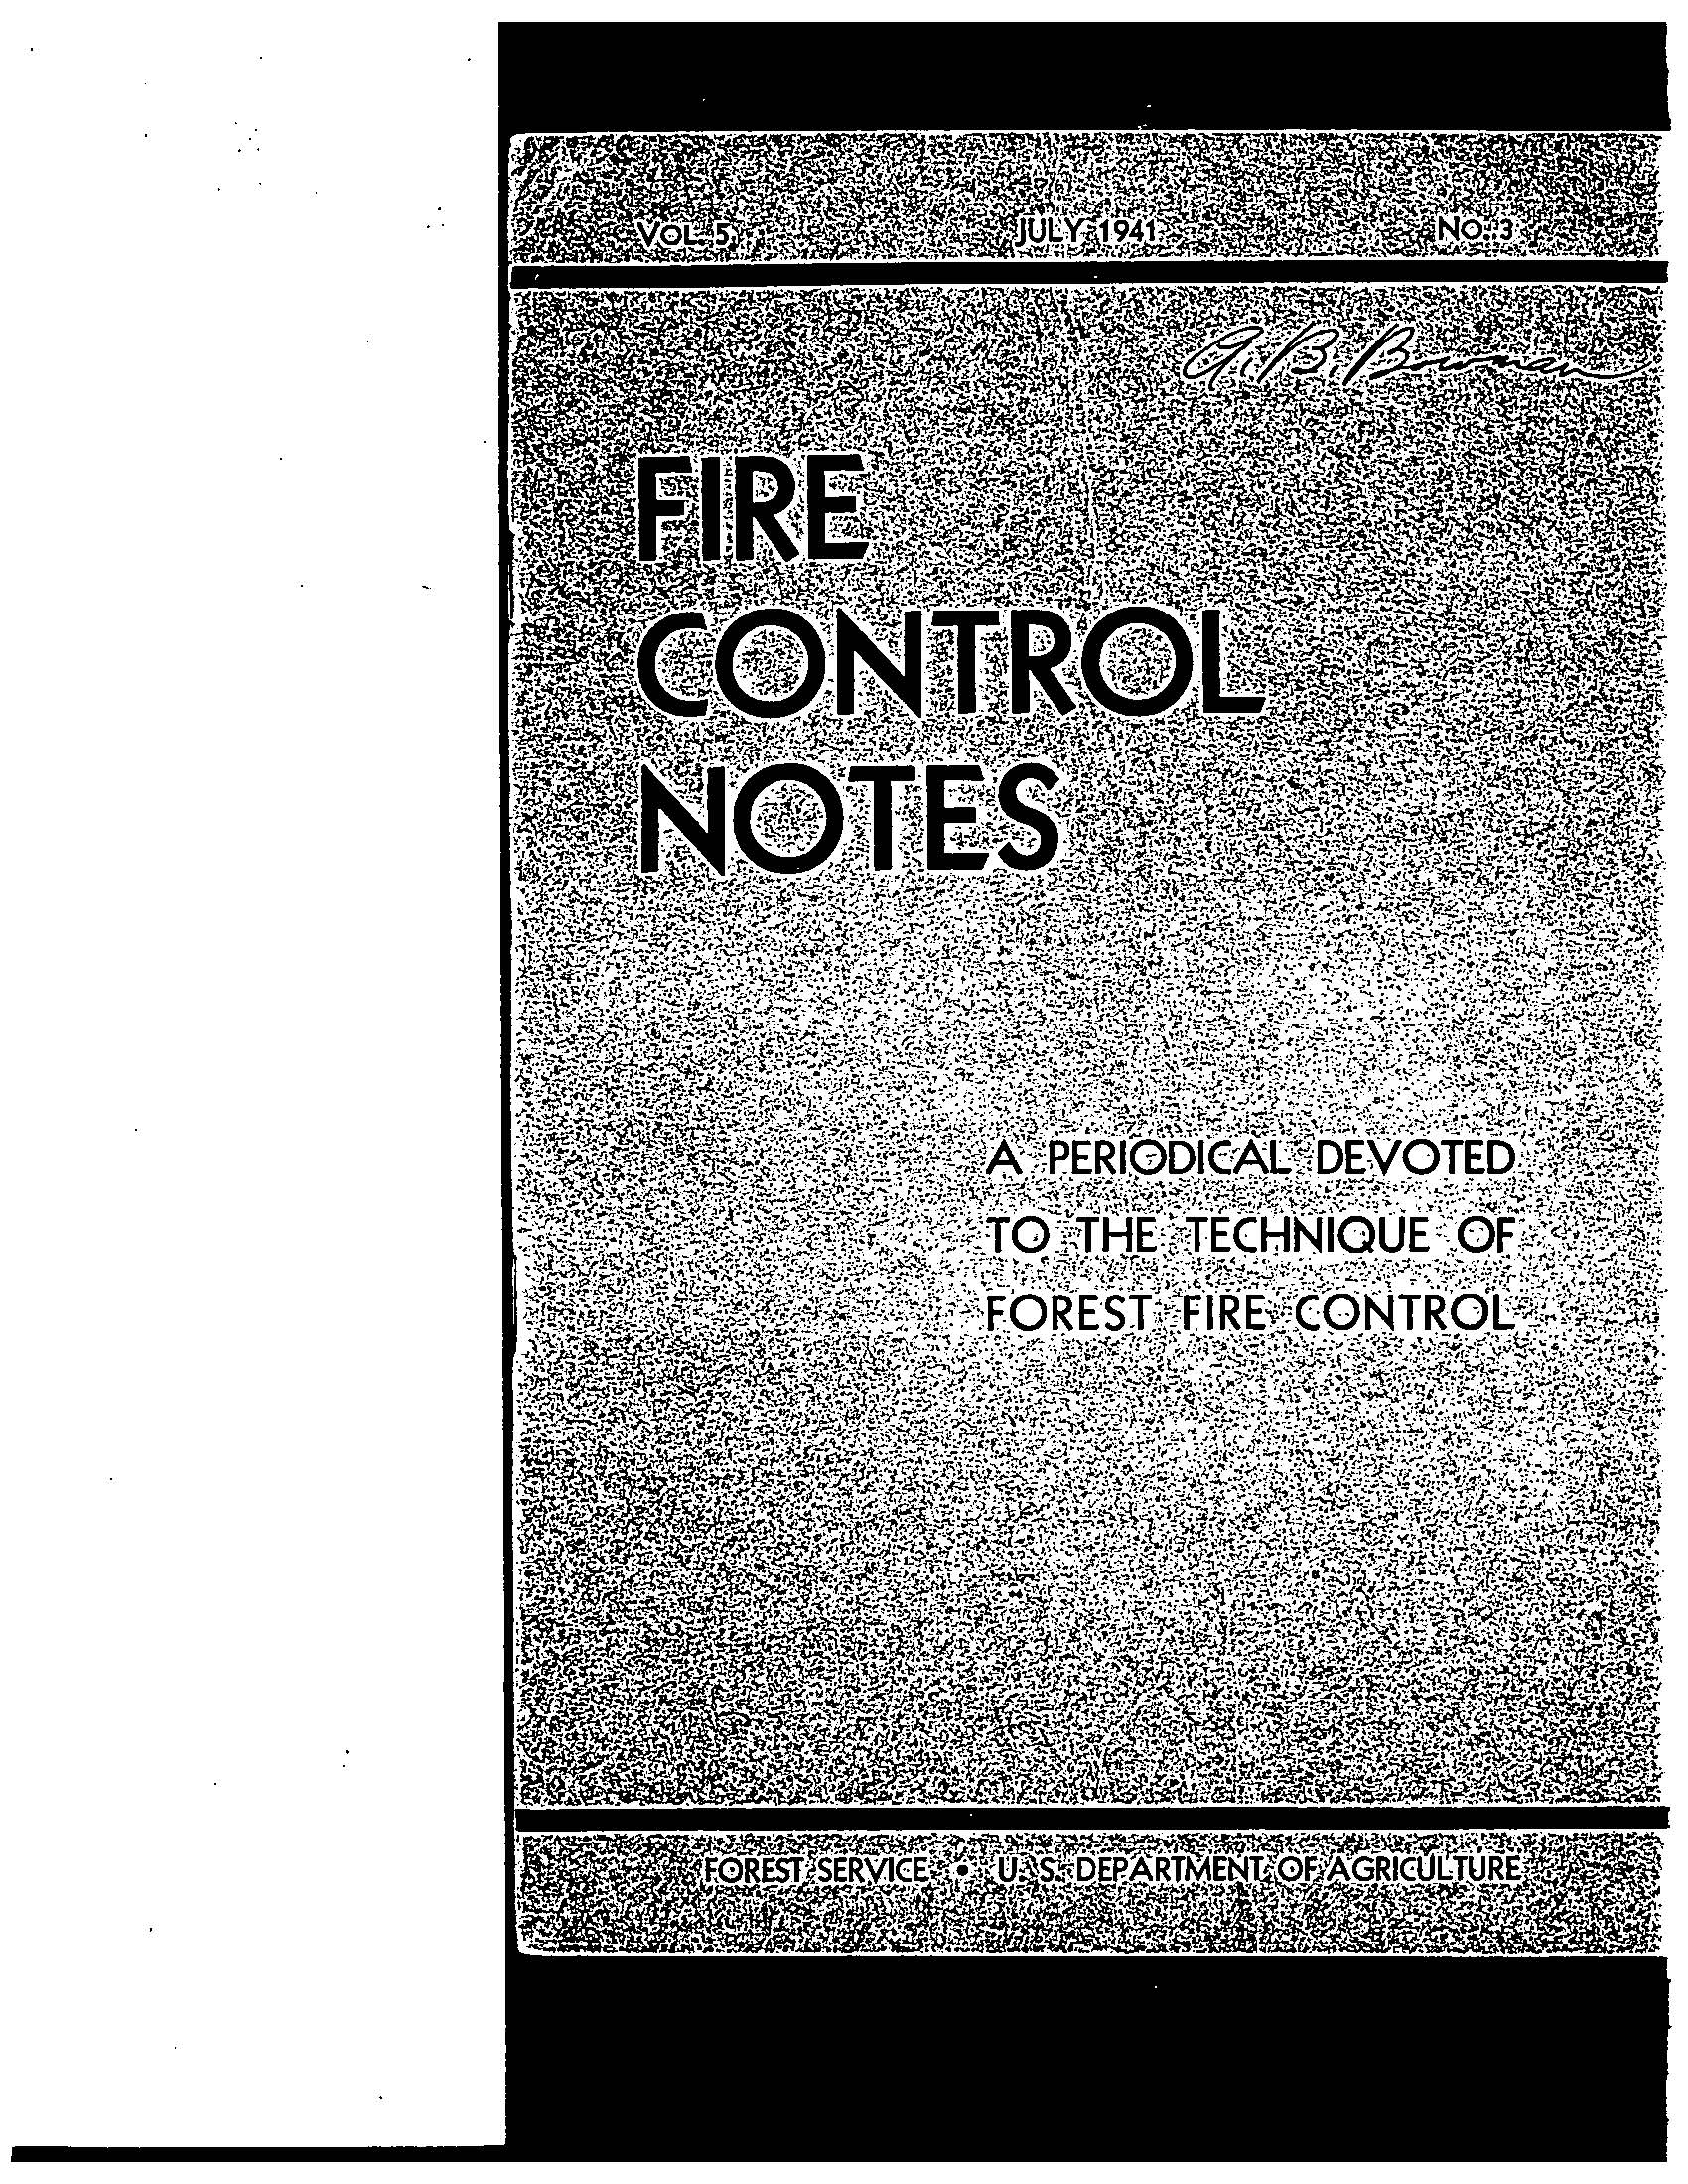 Cover of Fire Management Today Volume 05, Issue 03